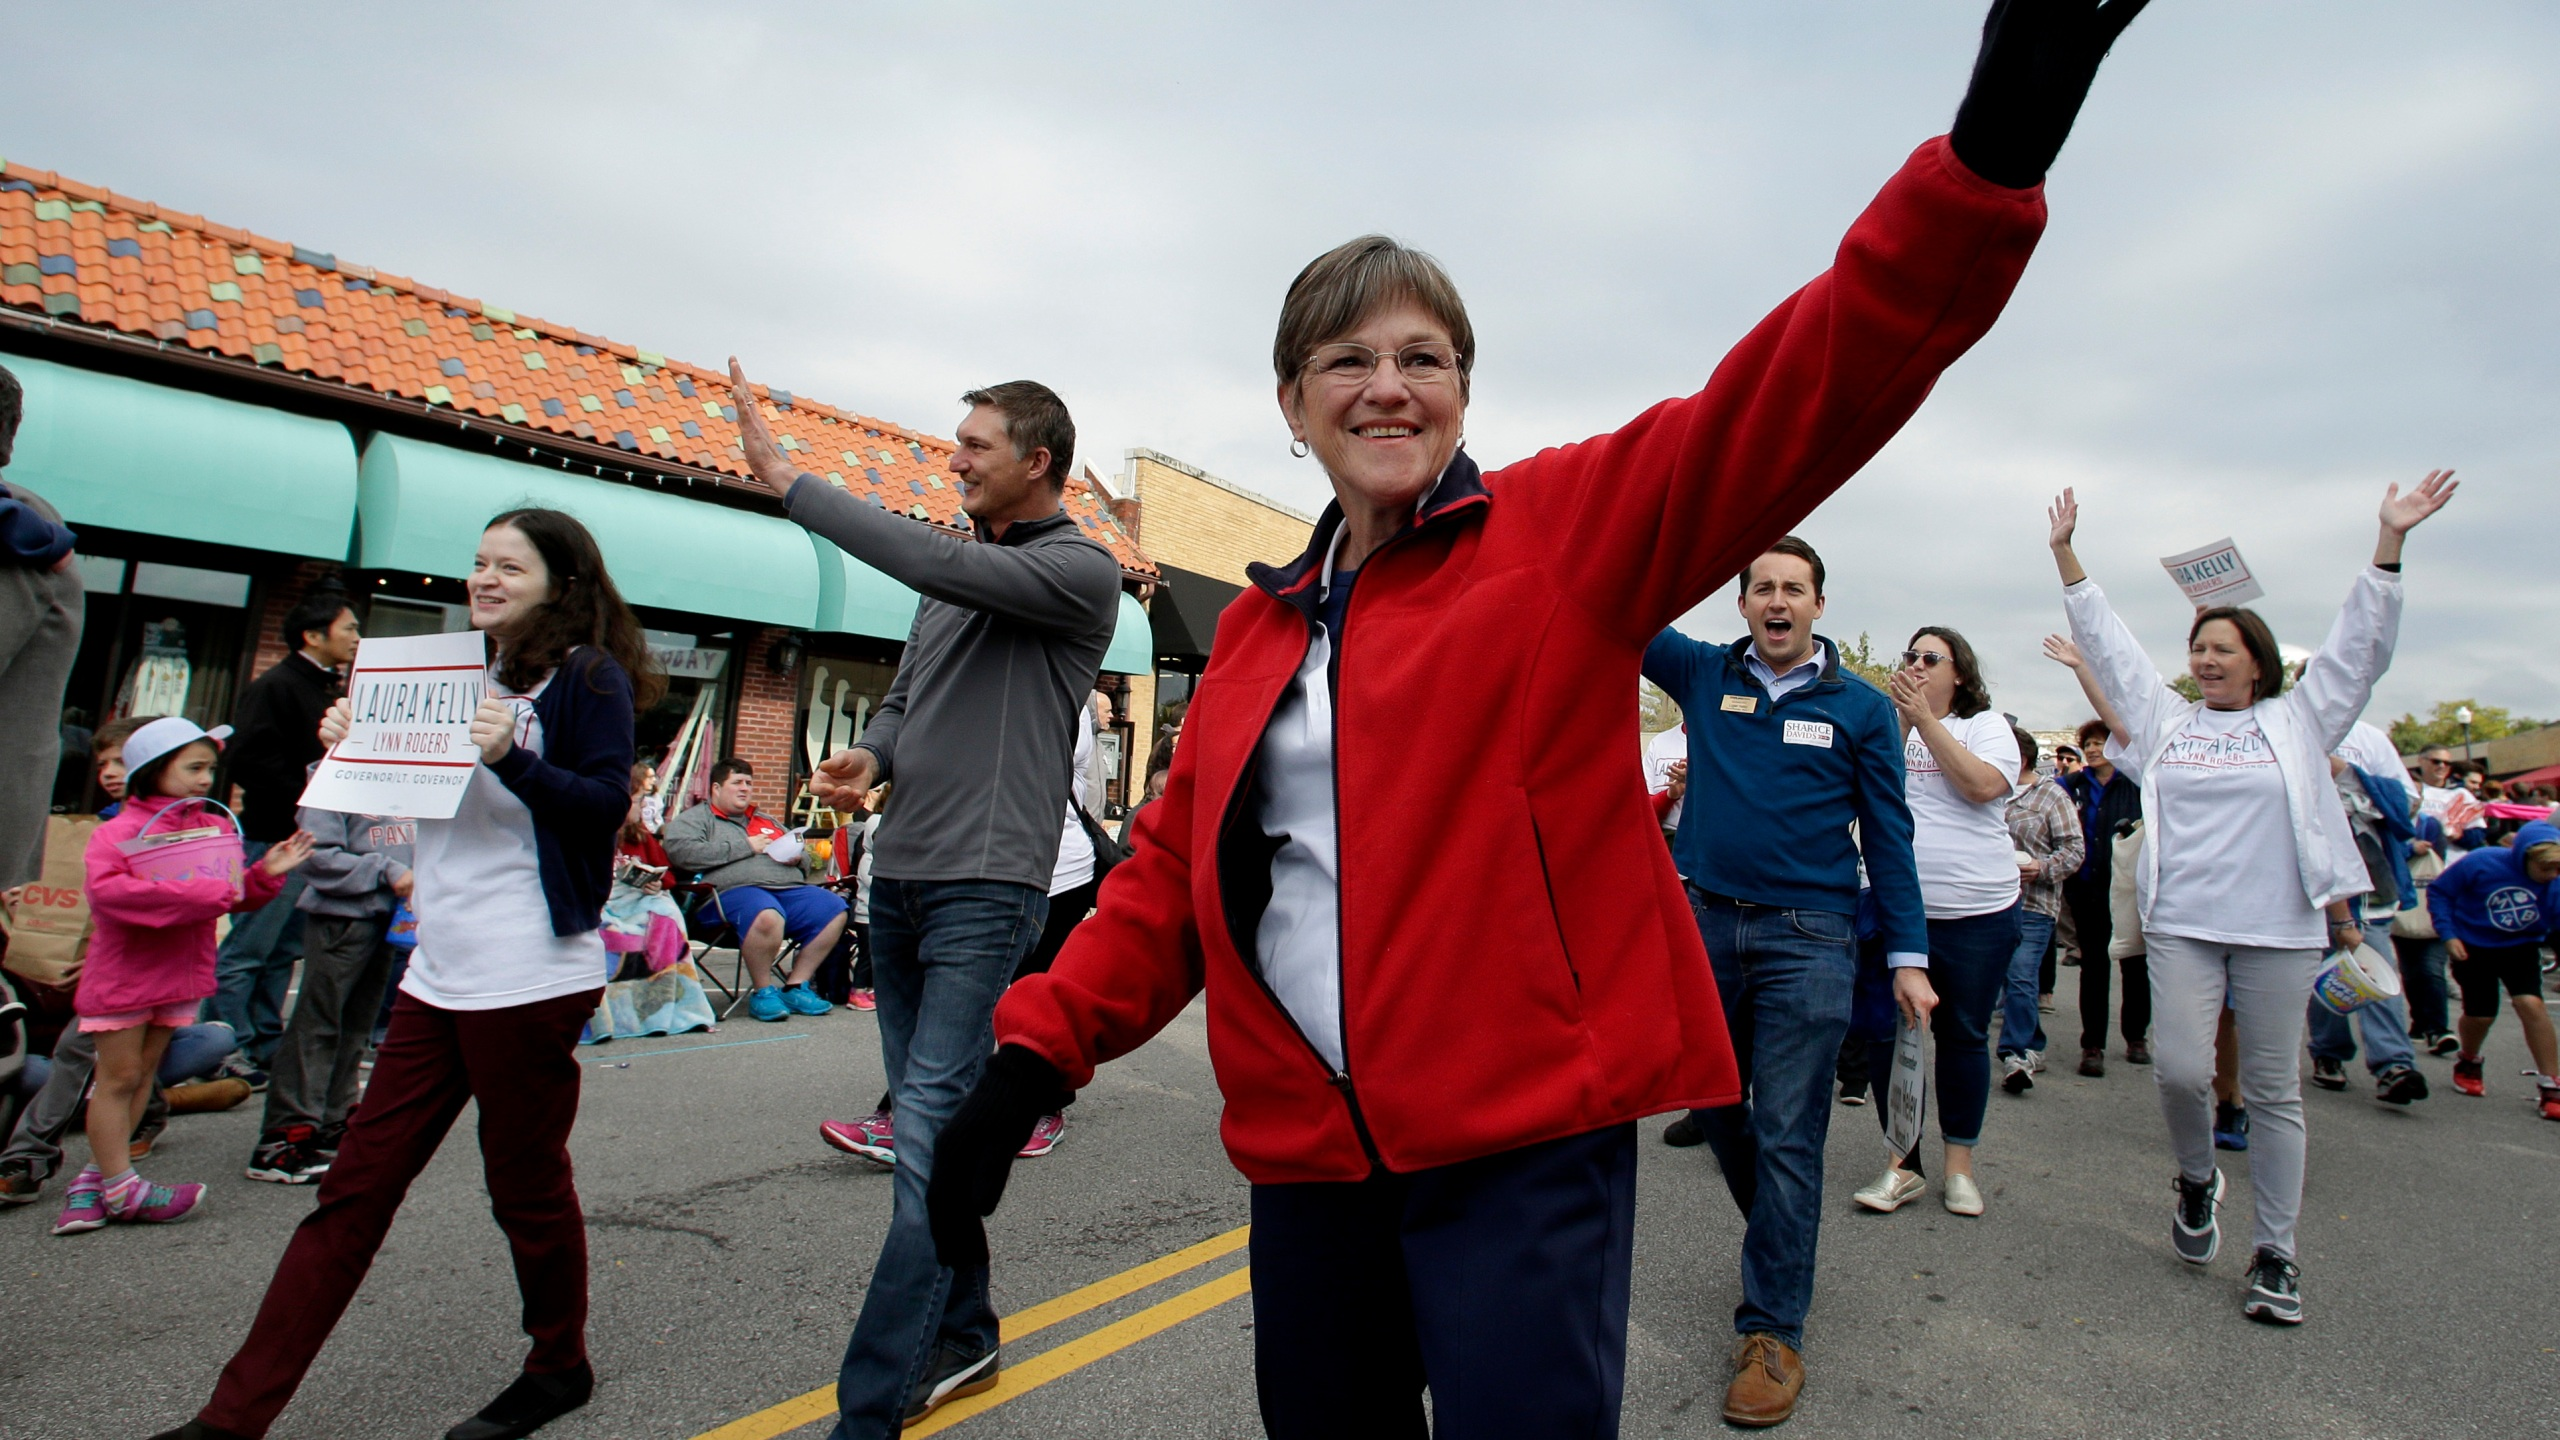 Election_2018_Women_Governors_77996-159532.jpg76901055